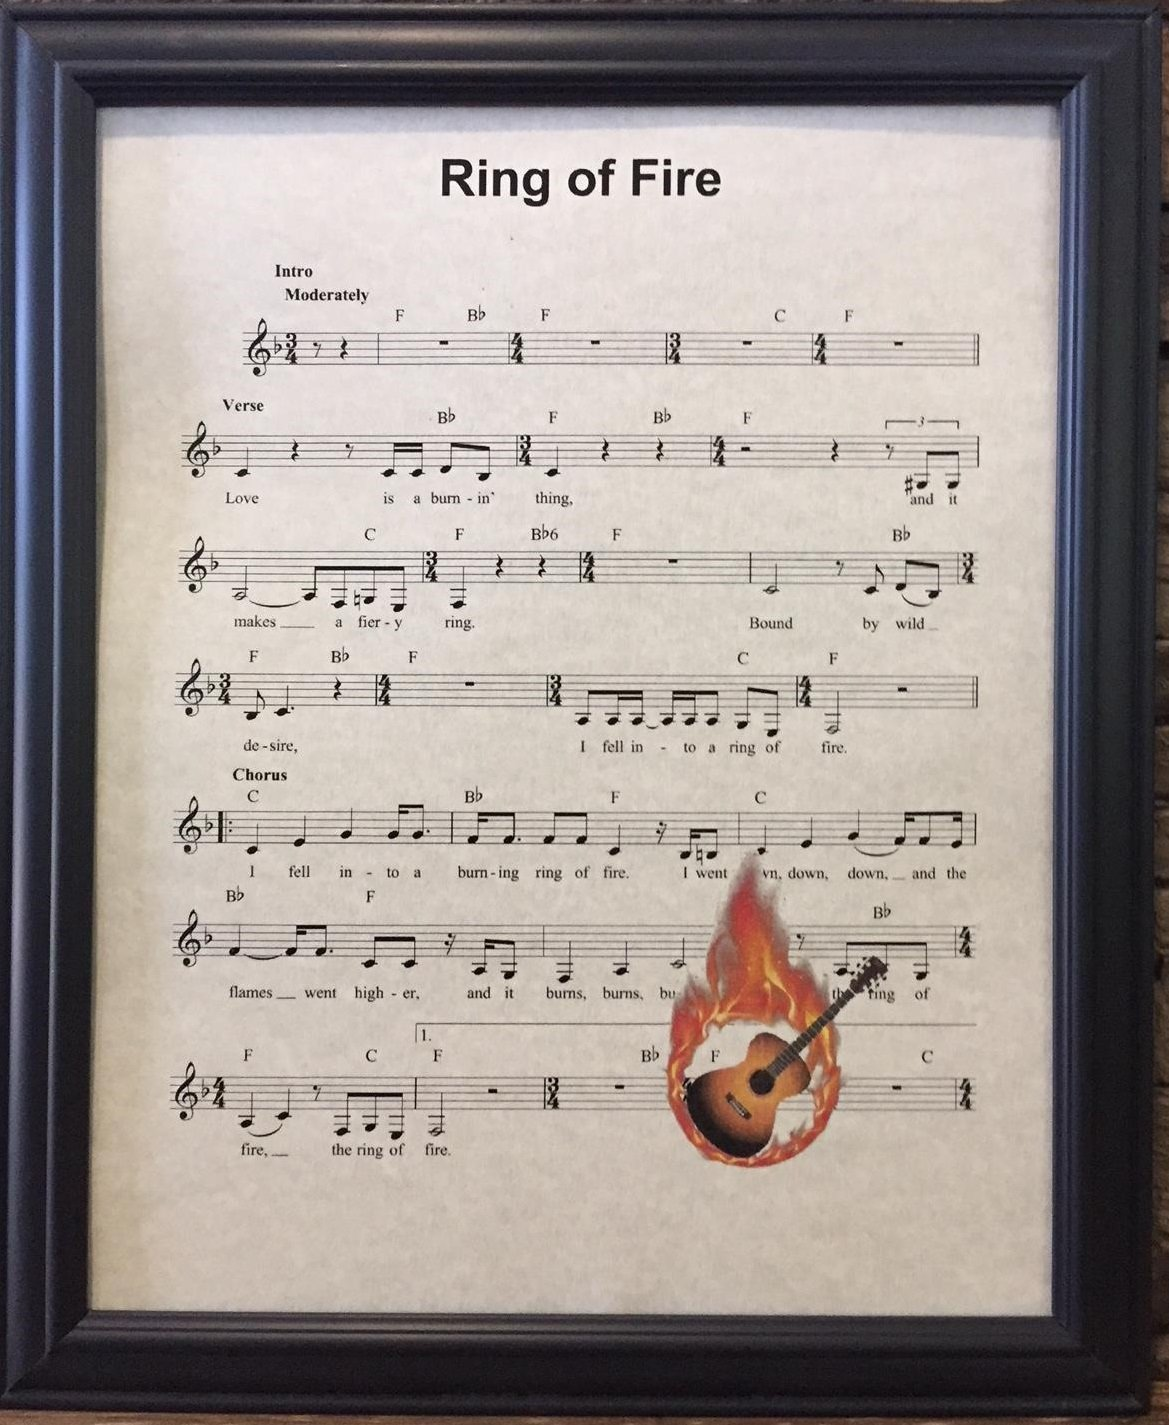 unframed Ready Prints Ring of Fire by Johnny Cash Music Sheet Artwork Print Picture Poster Home Office Bedroom Nursery Kitchen Wall Decor